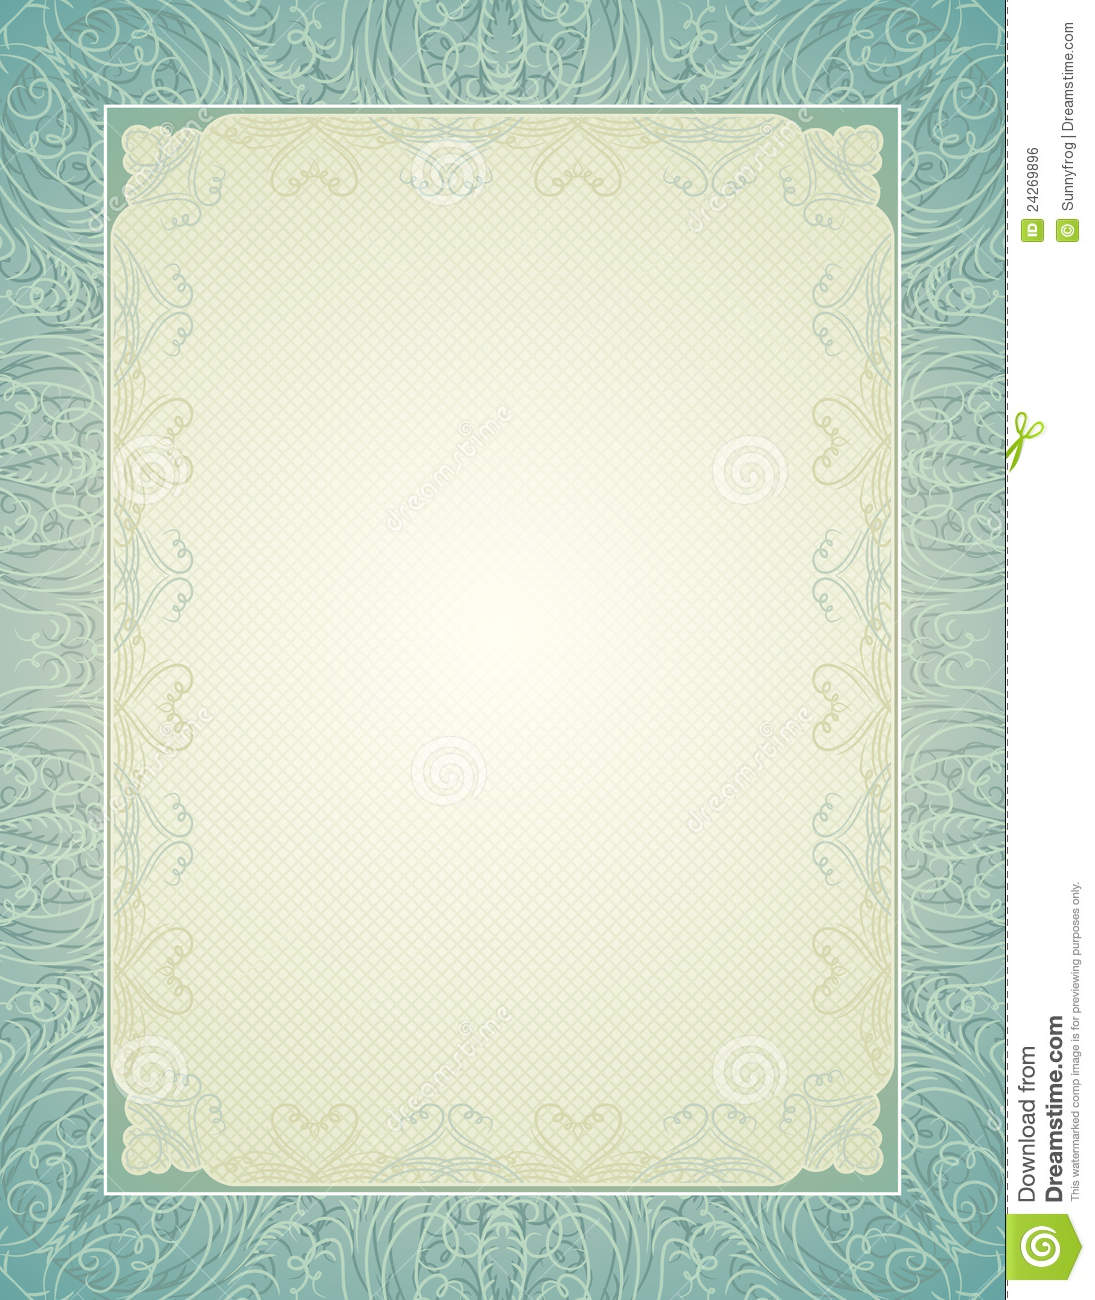 Certificate Background With Calligraphic Lines Royalty Free Stock ...